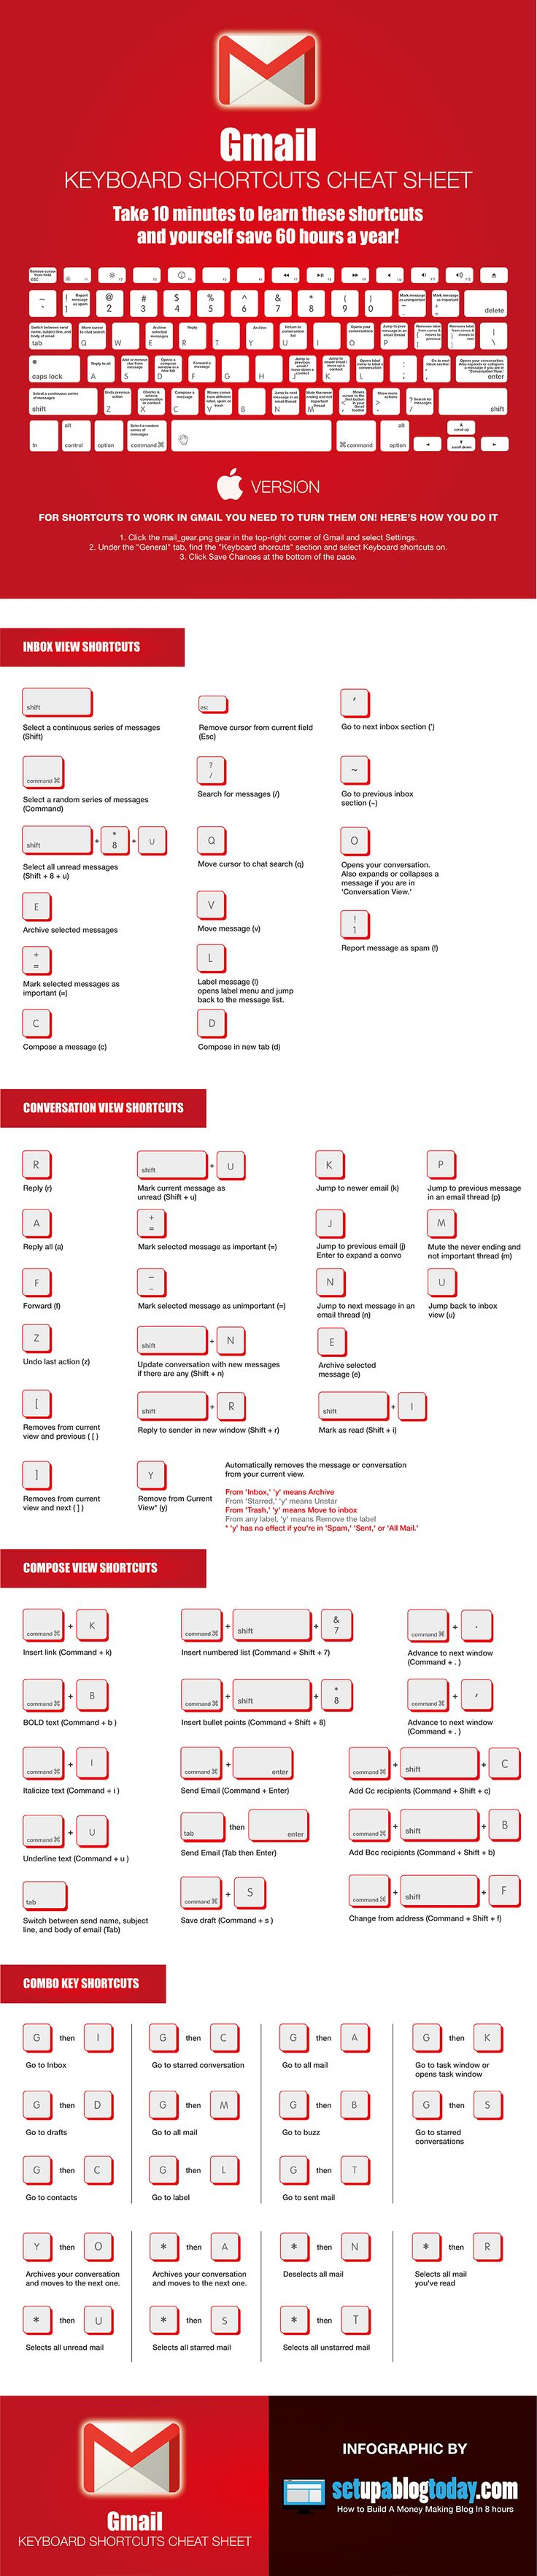 A Cheat Sheet Of Handy Gmail Keyboard #Shortcuts For Windows And Mac - DesignTAXI.com